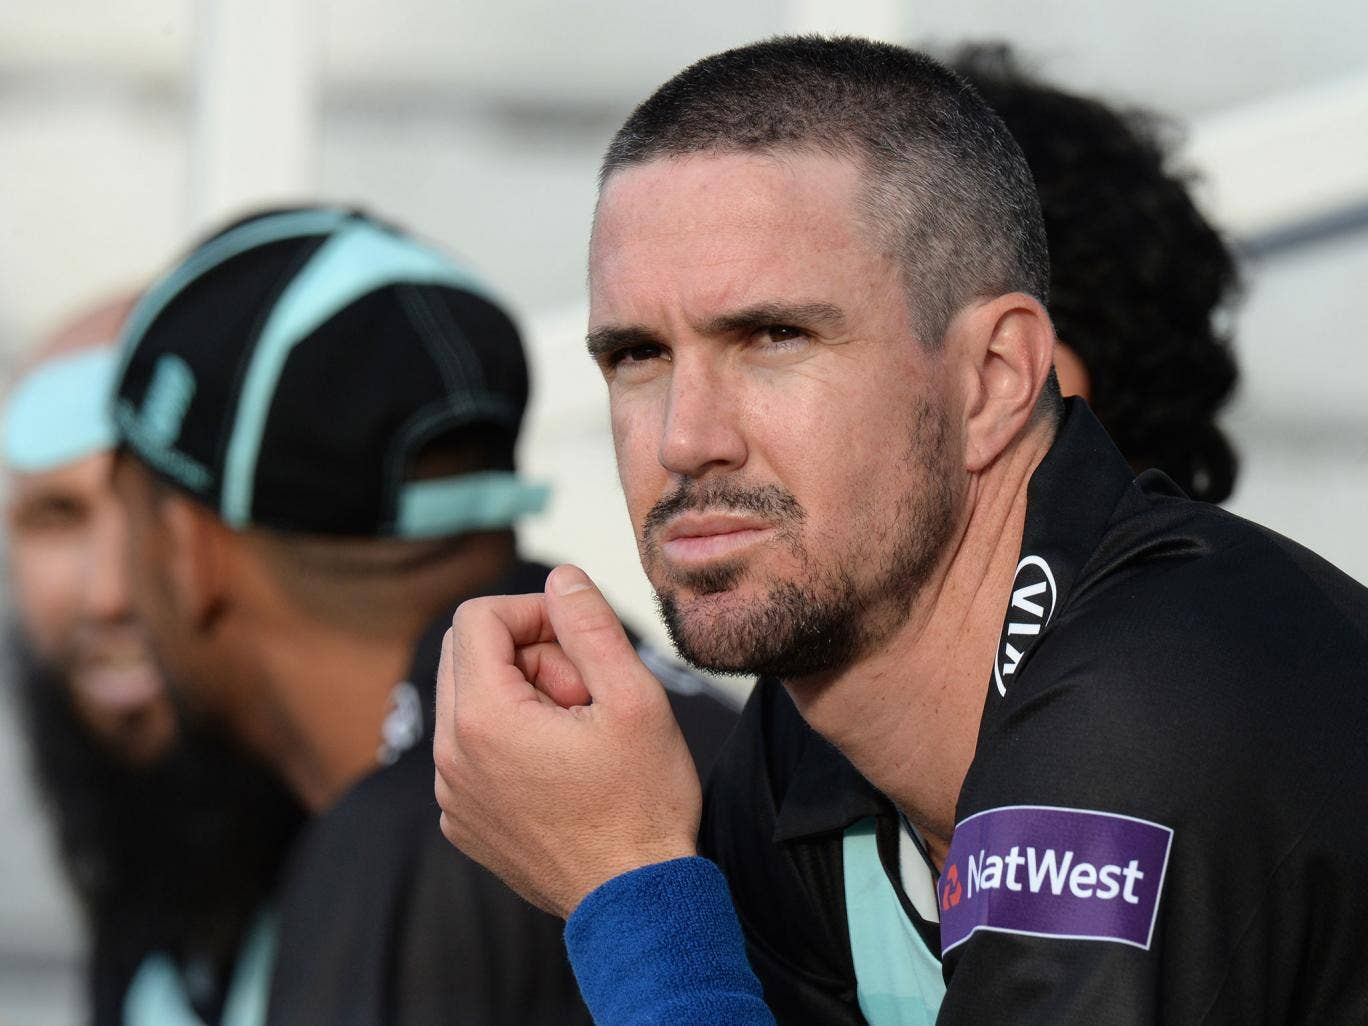 Kevin Pietersen of Surrey sitting on the bench after his innings during the NatWest T20 Blast match between Surrey and Essex Eagles